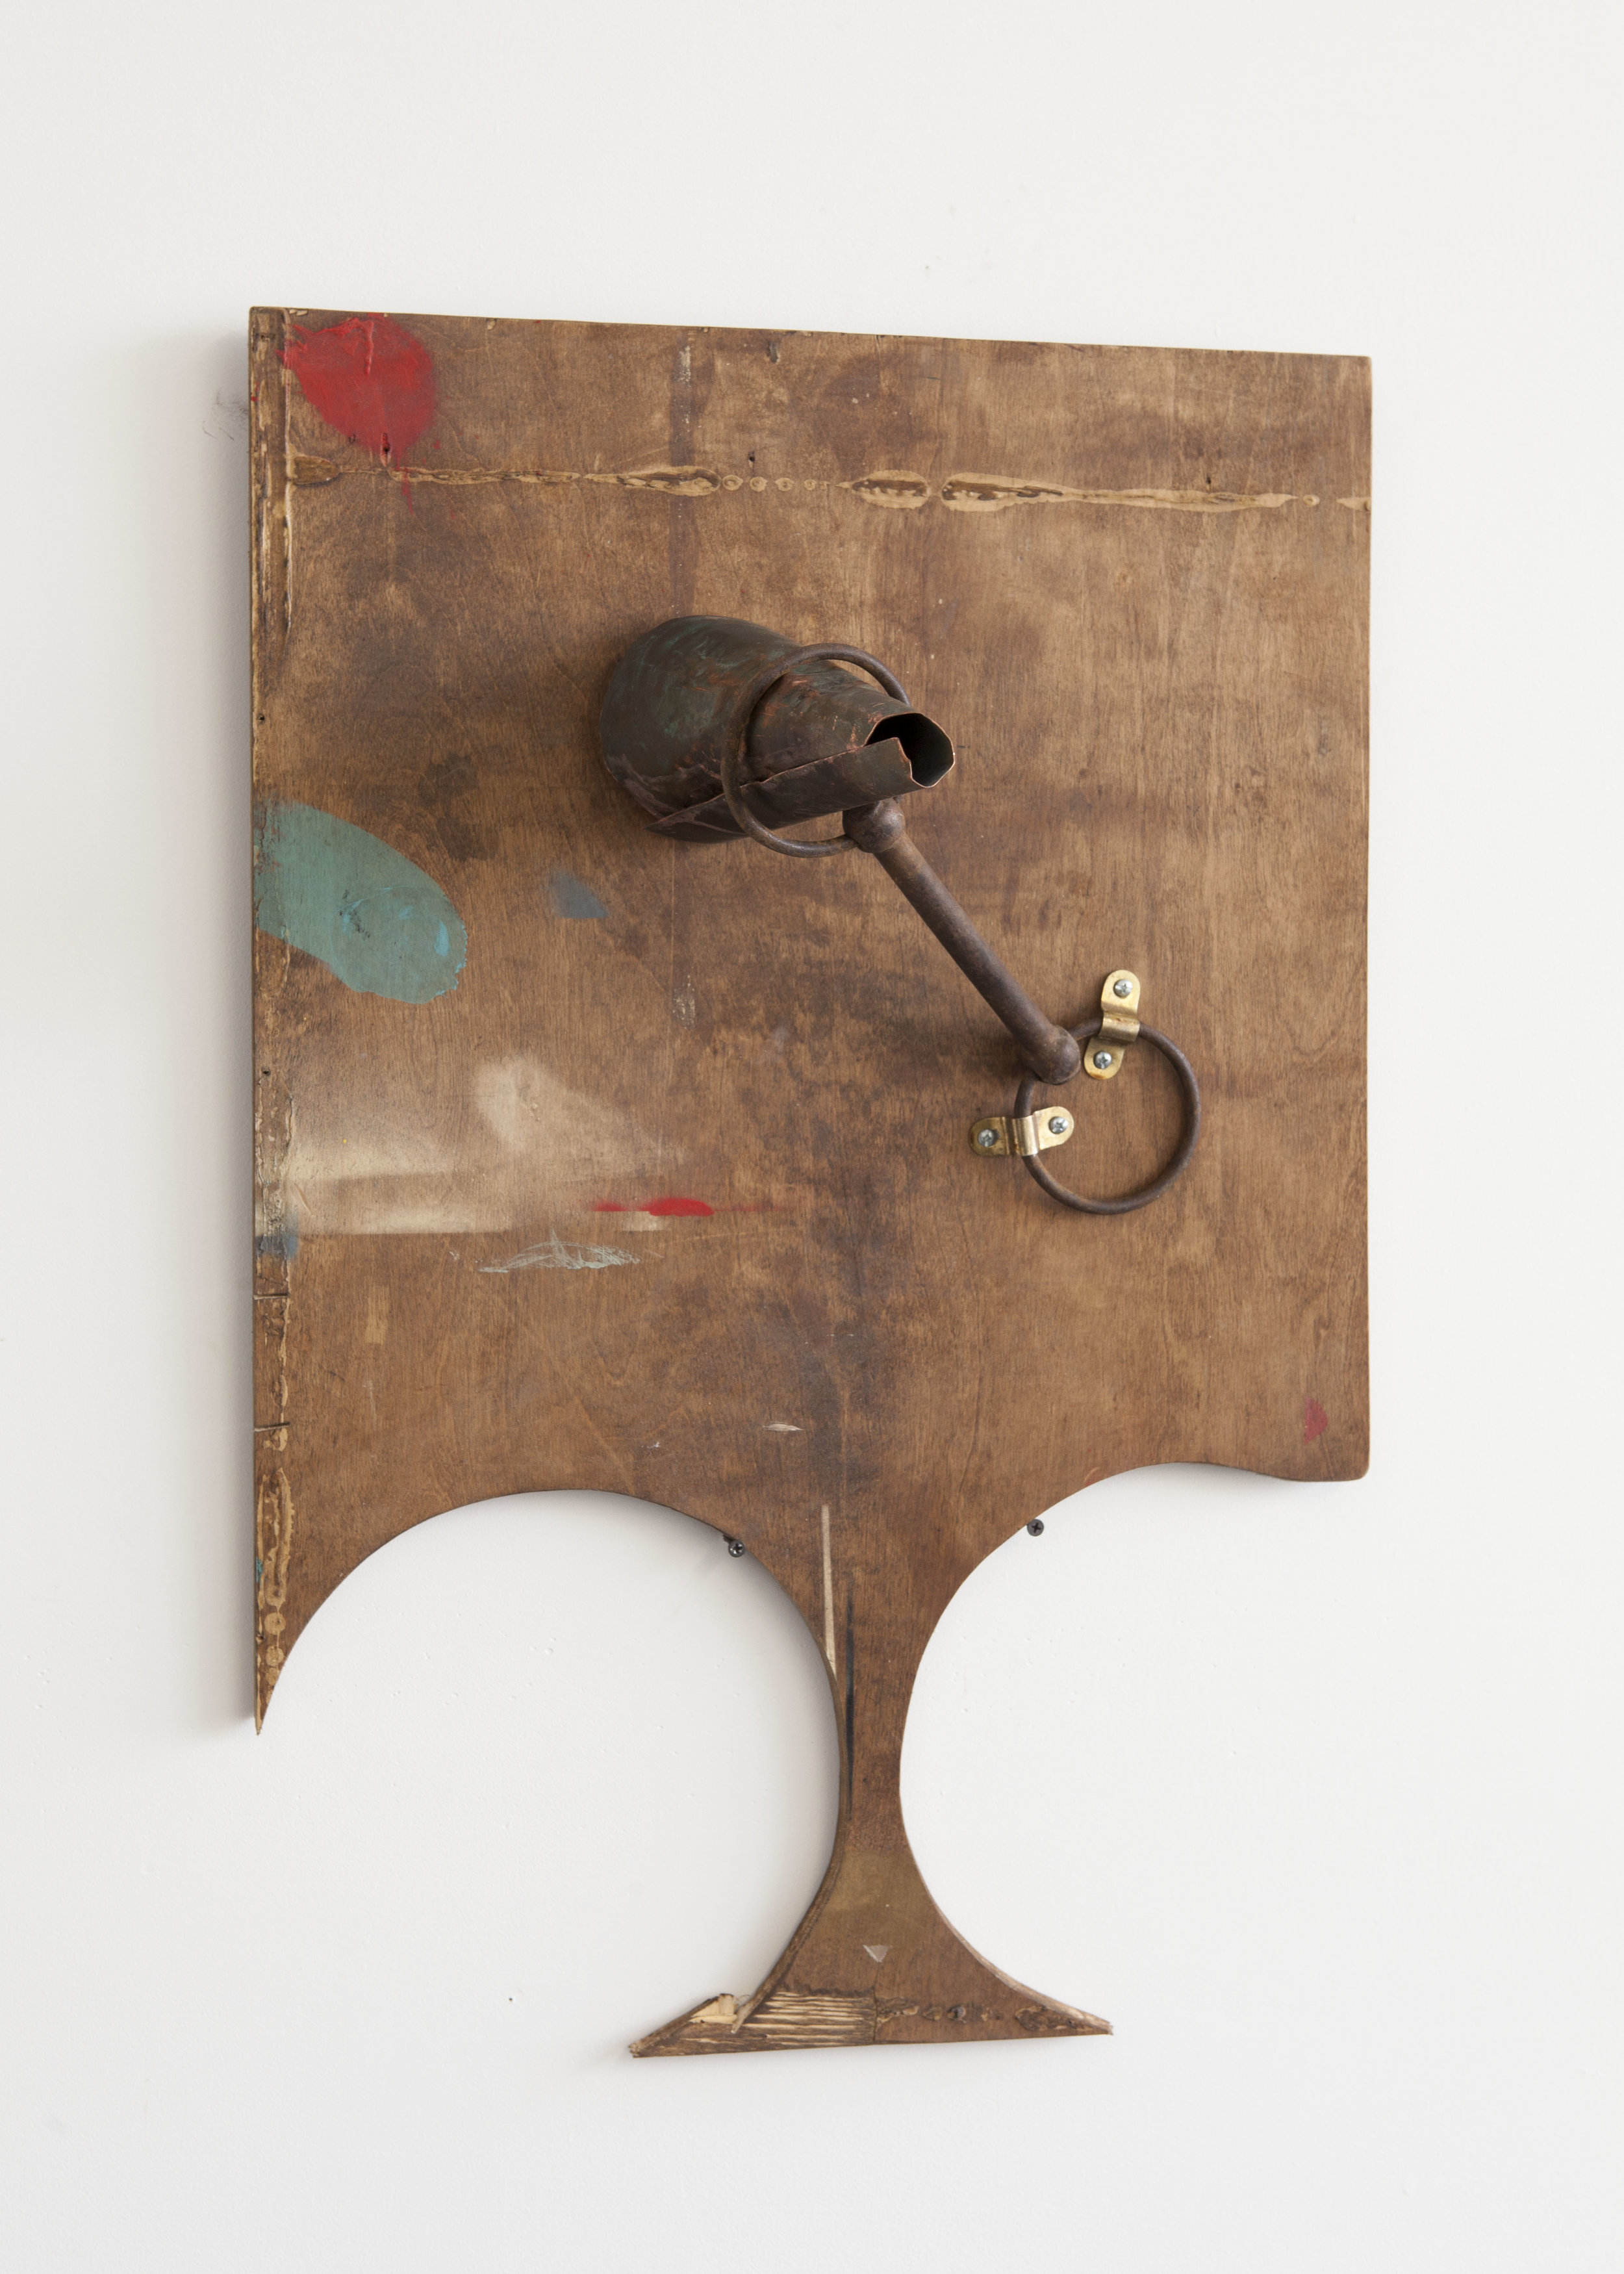 Untitled, found metal, oxidized copper, paint, wood, stain, hardware, 2017